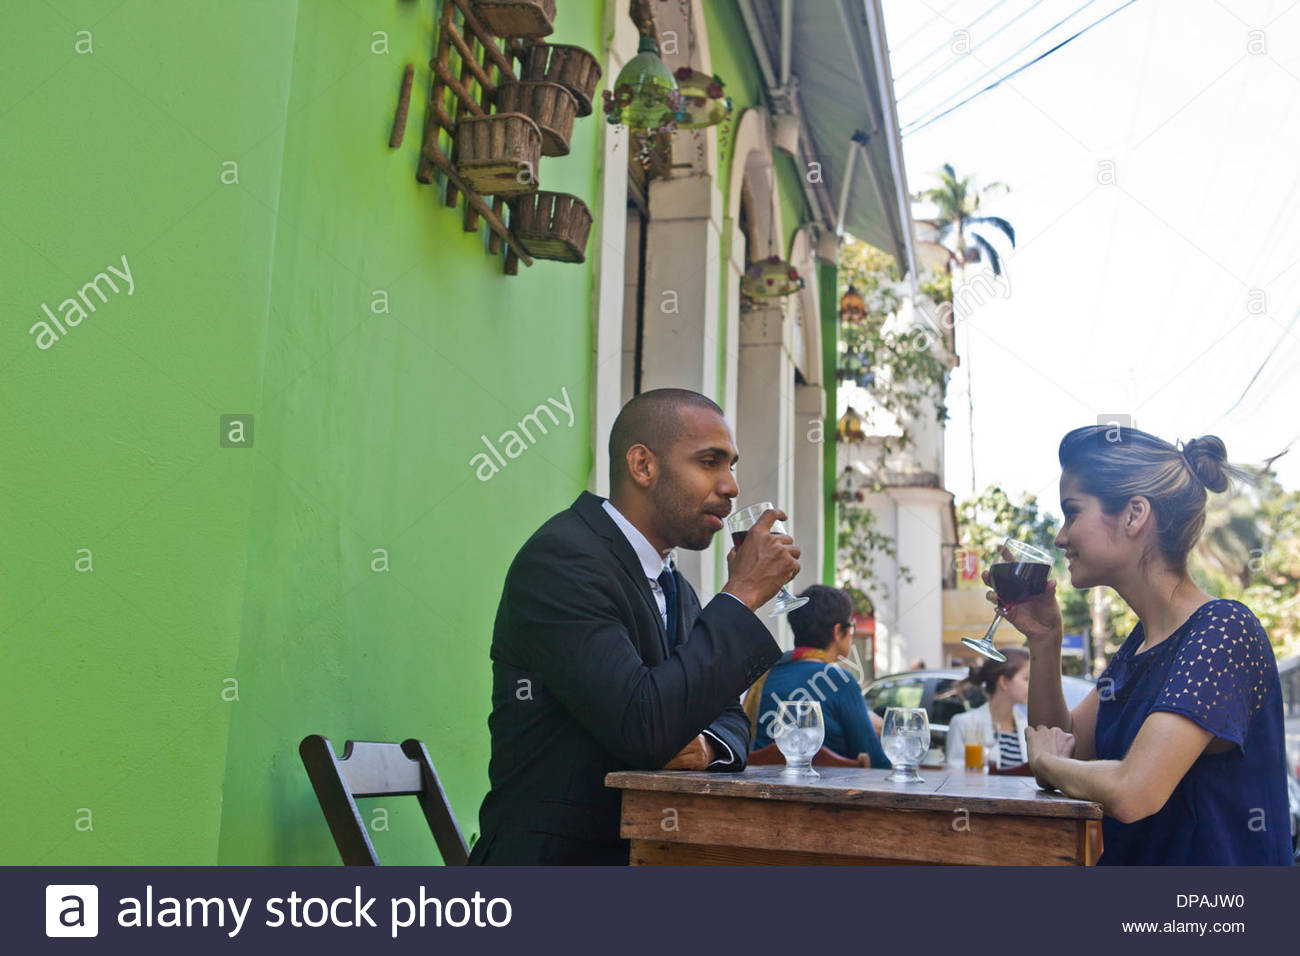 Man and woman having wine outside cafe - Stock Image